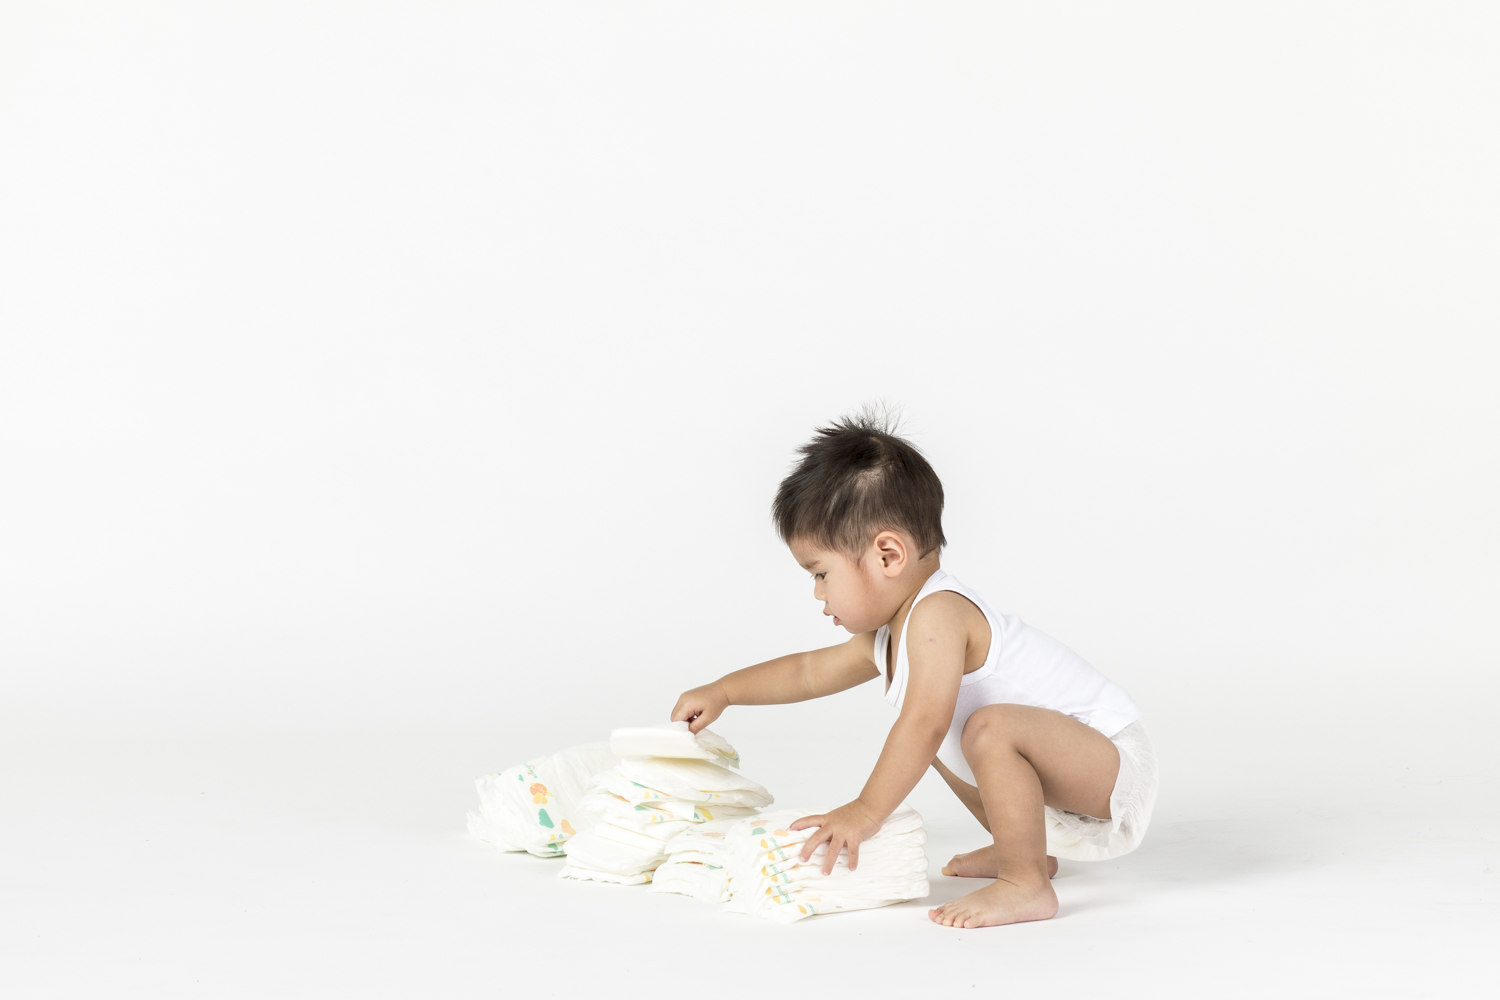 donate nappies - Help vulnerable families by donating your unused nappies during one of our collections.